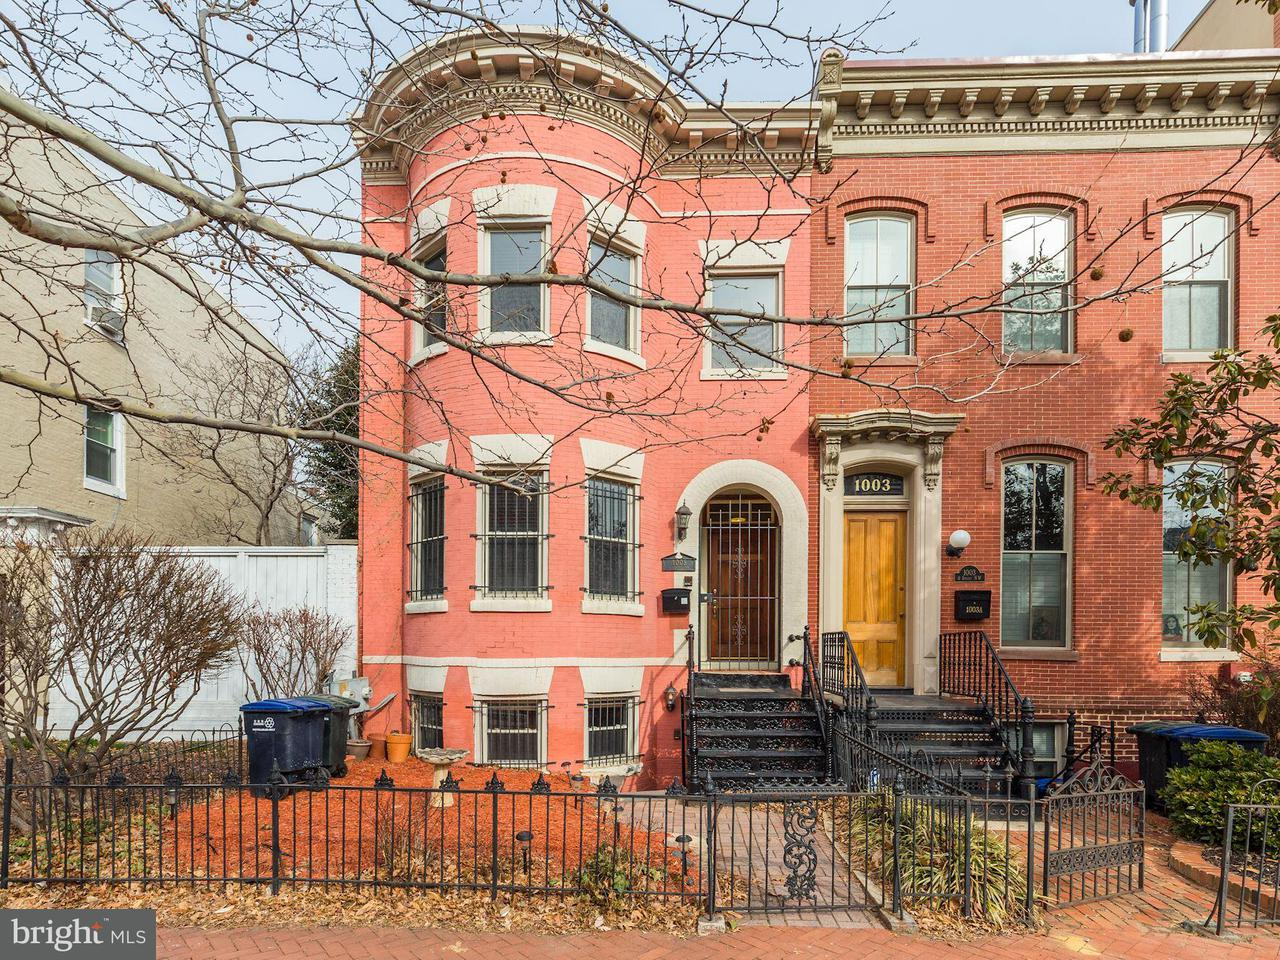 Single Family for Sale at 1005 O St NW Washington, District Of Columbia 20001 United States